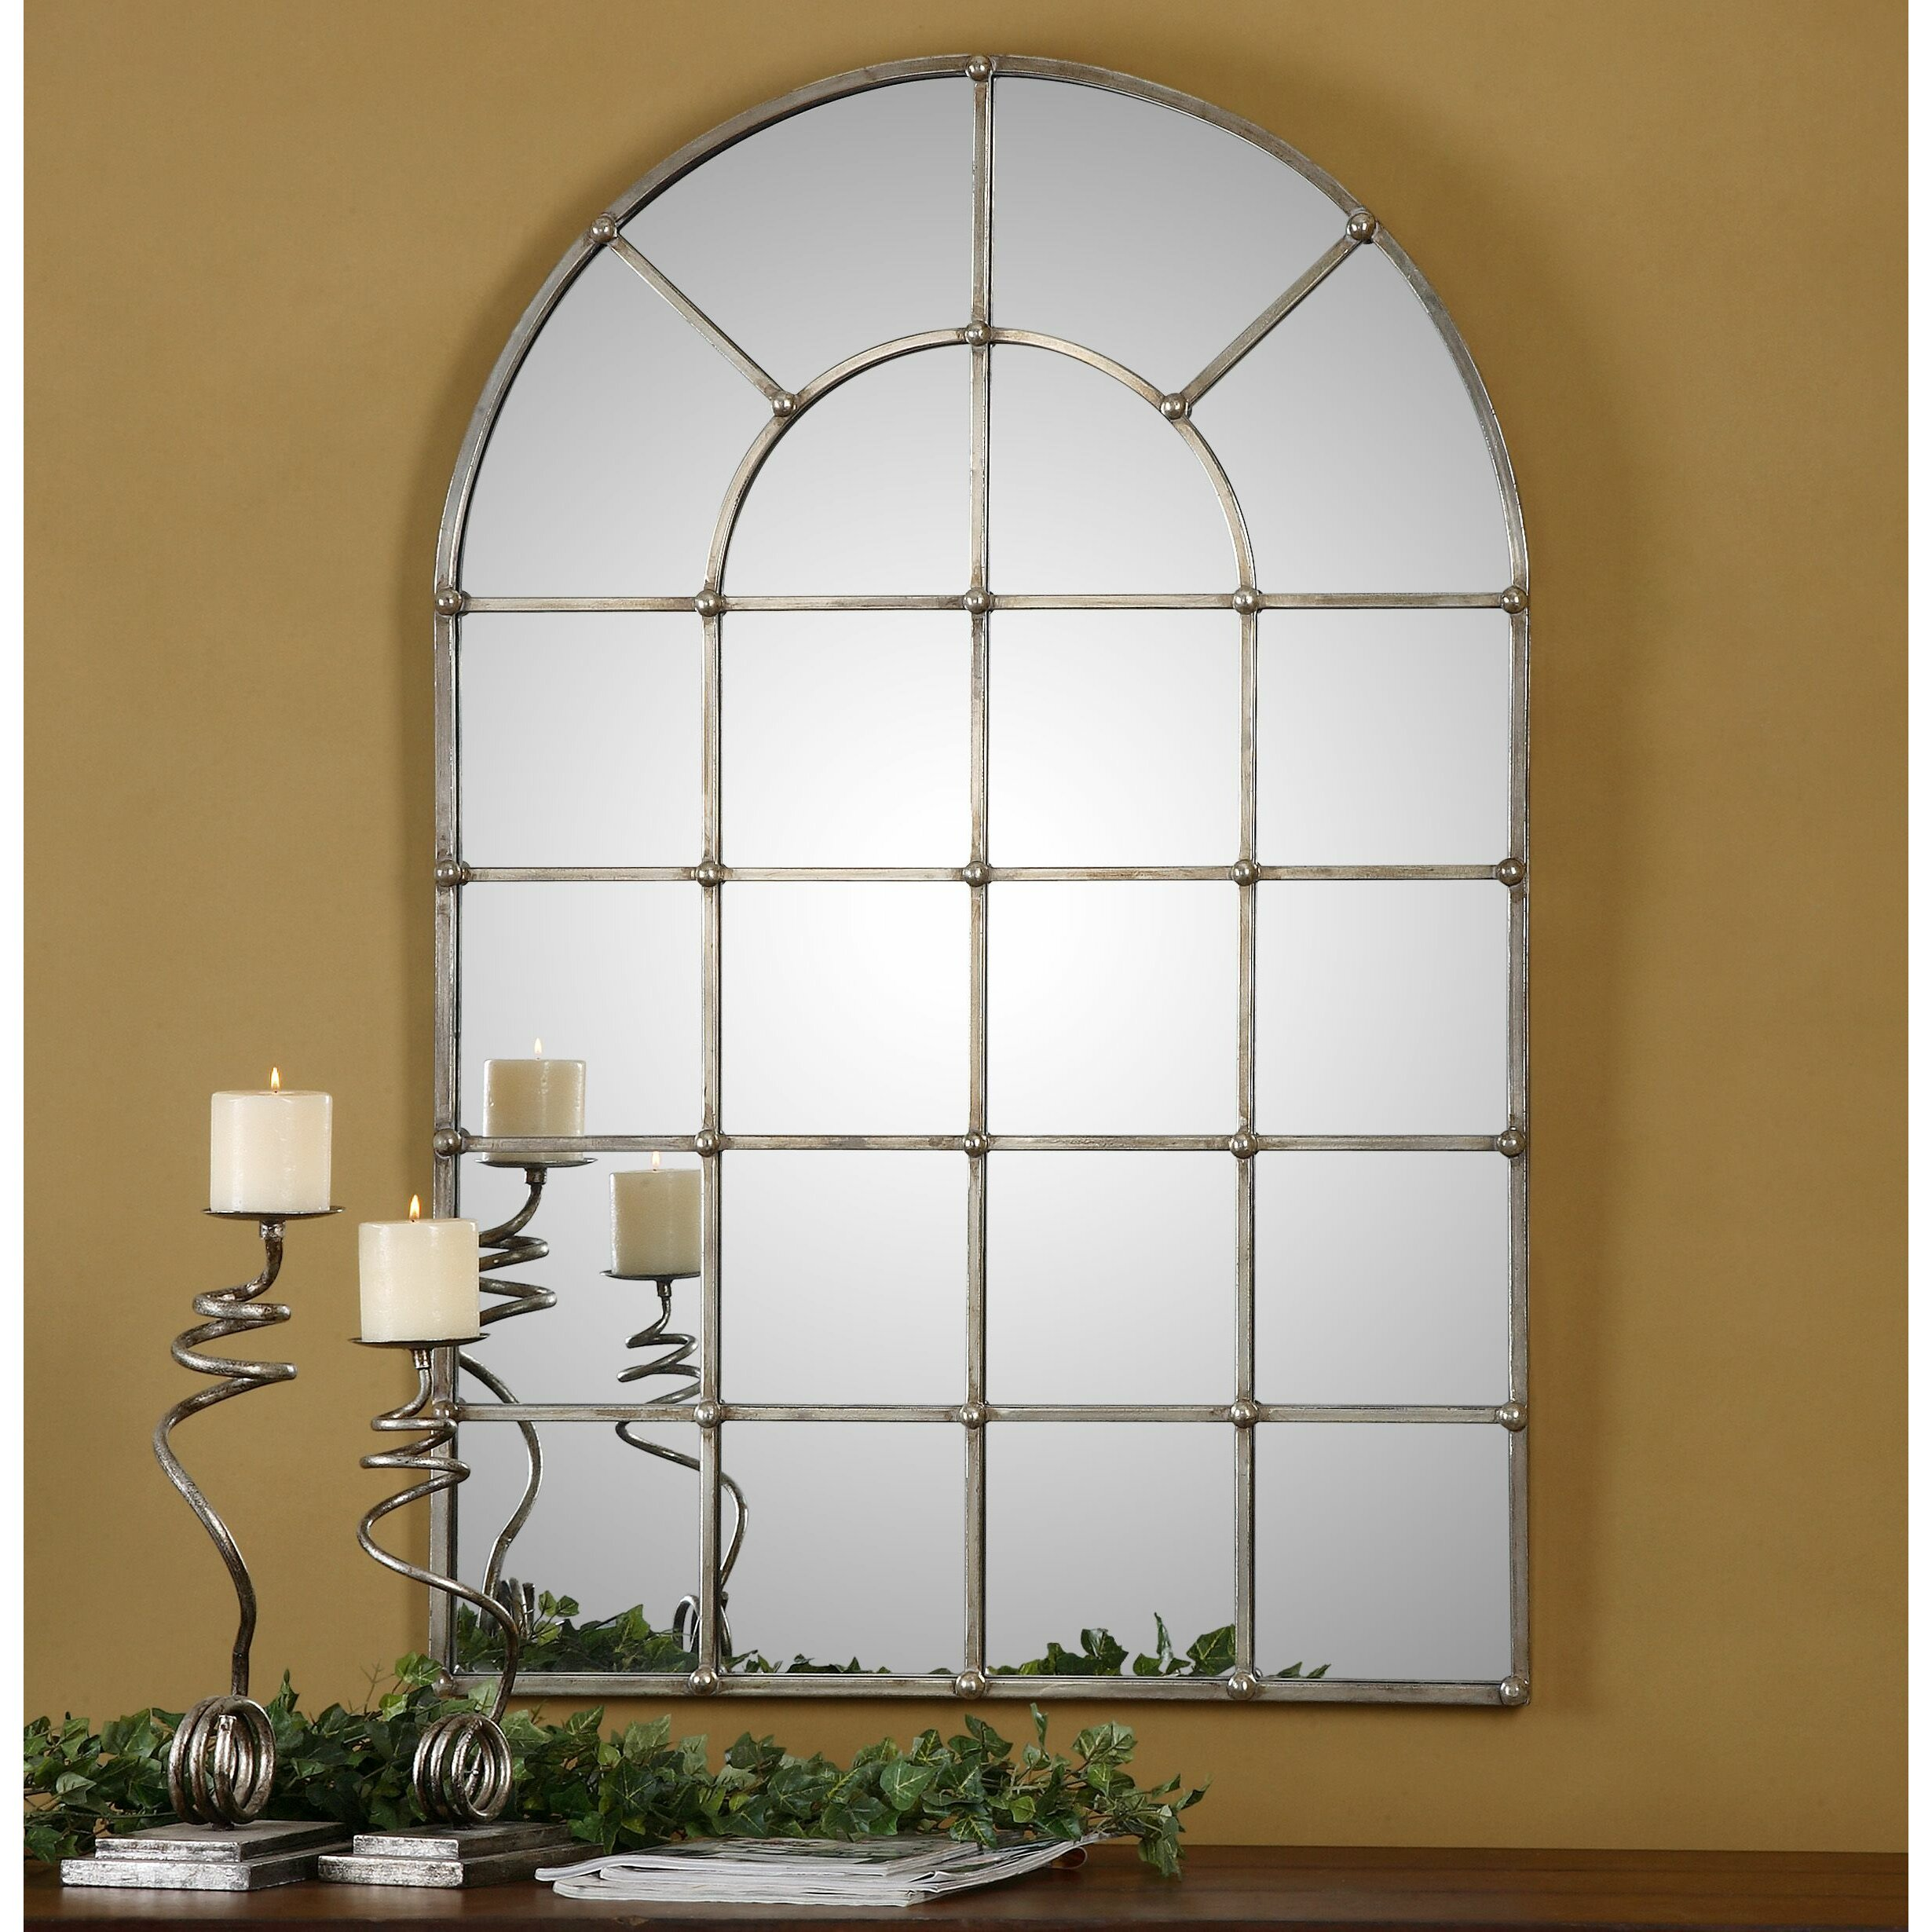 Uttermost Barwell Arch Window Wall Mirror & Reviews